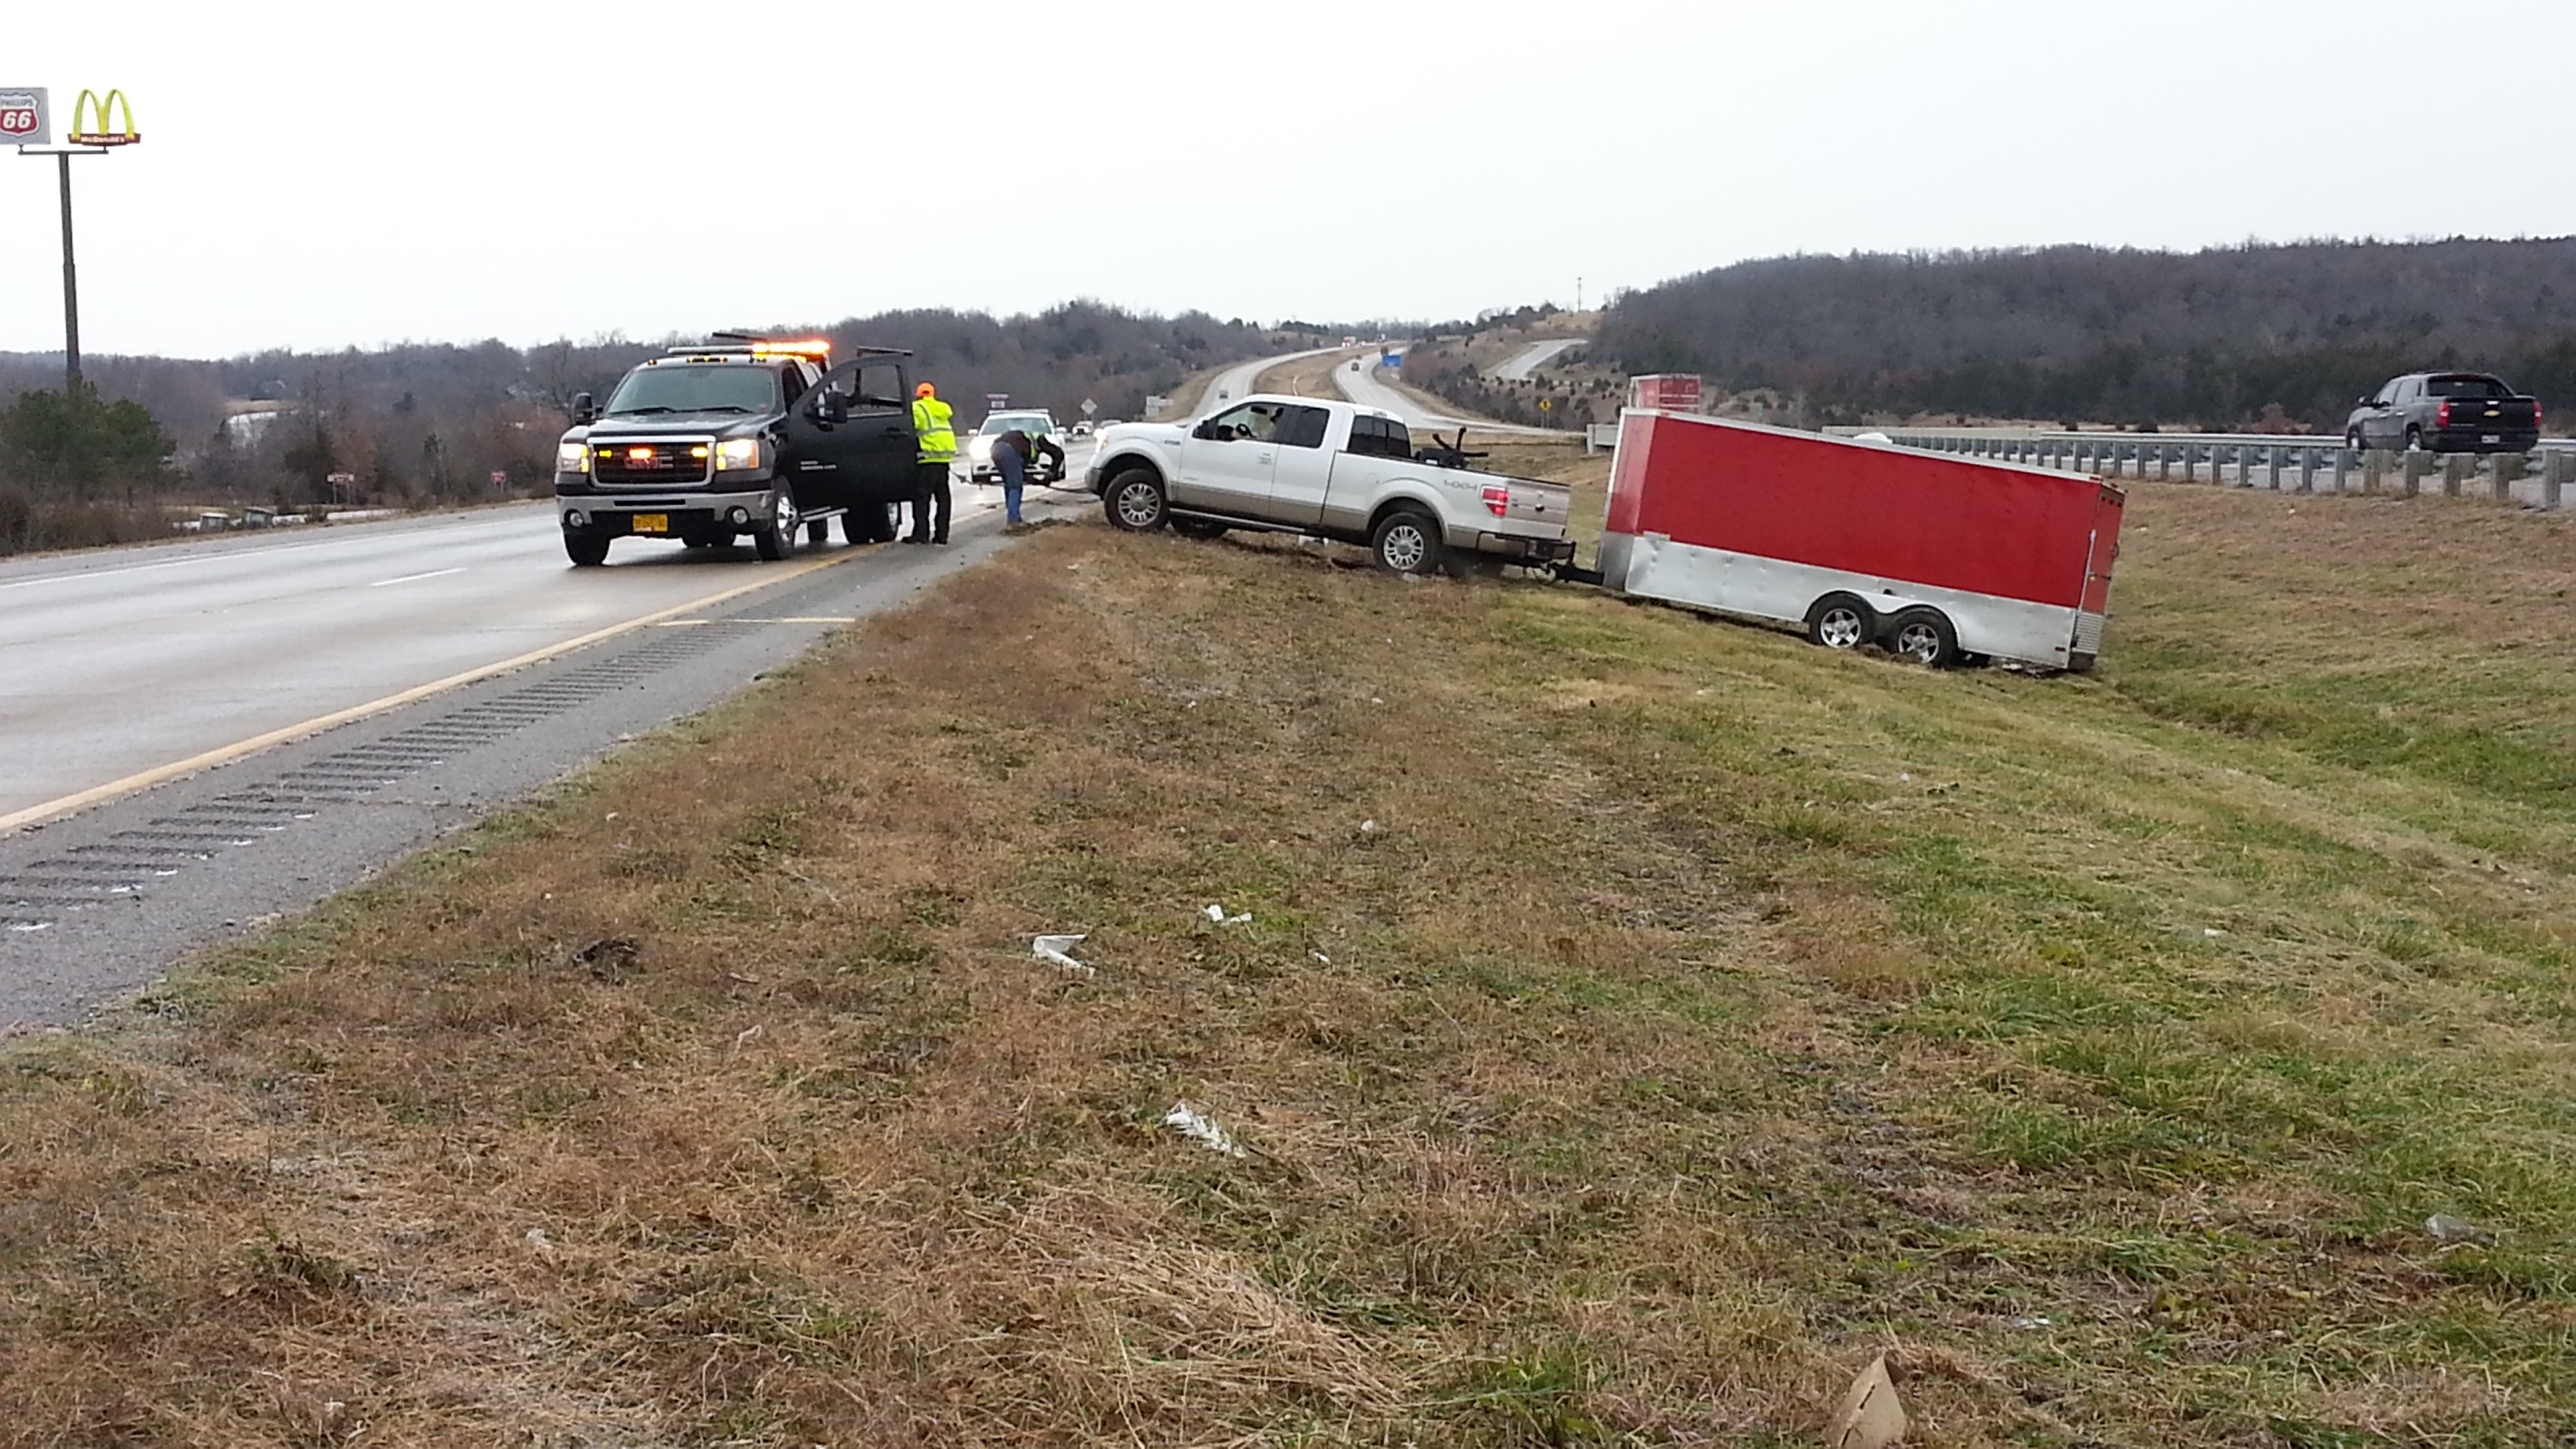 I-540 Wreck in Greenland